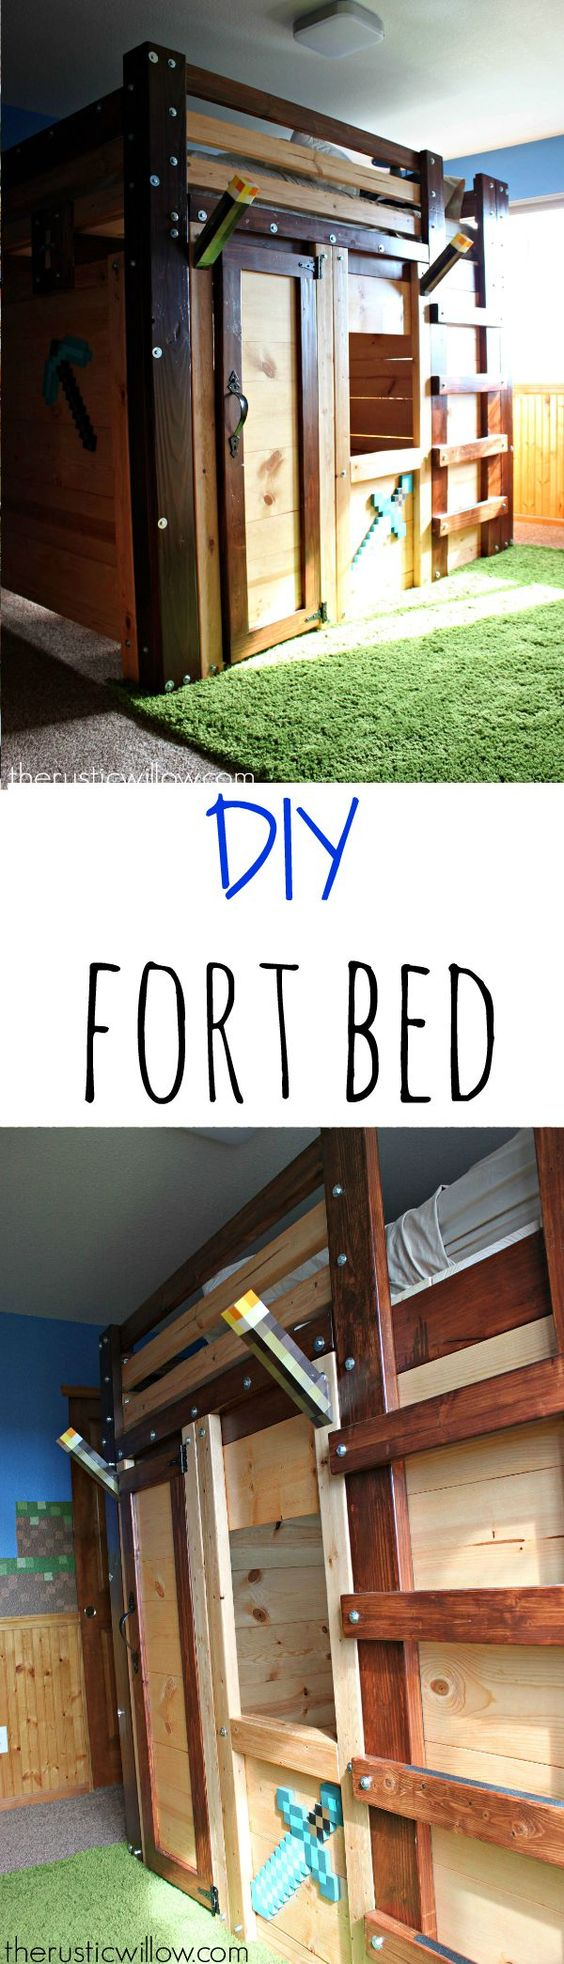 DIY Fort Bed for a children's dream room | therusticwillow.com